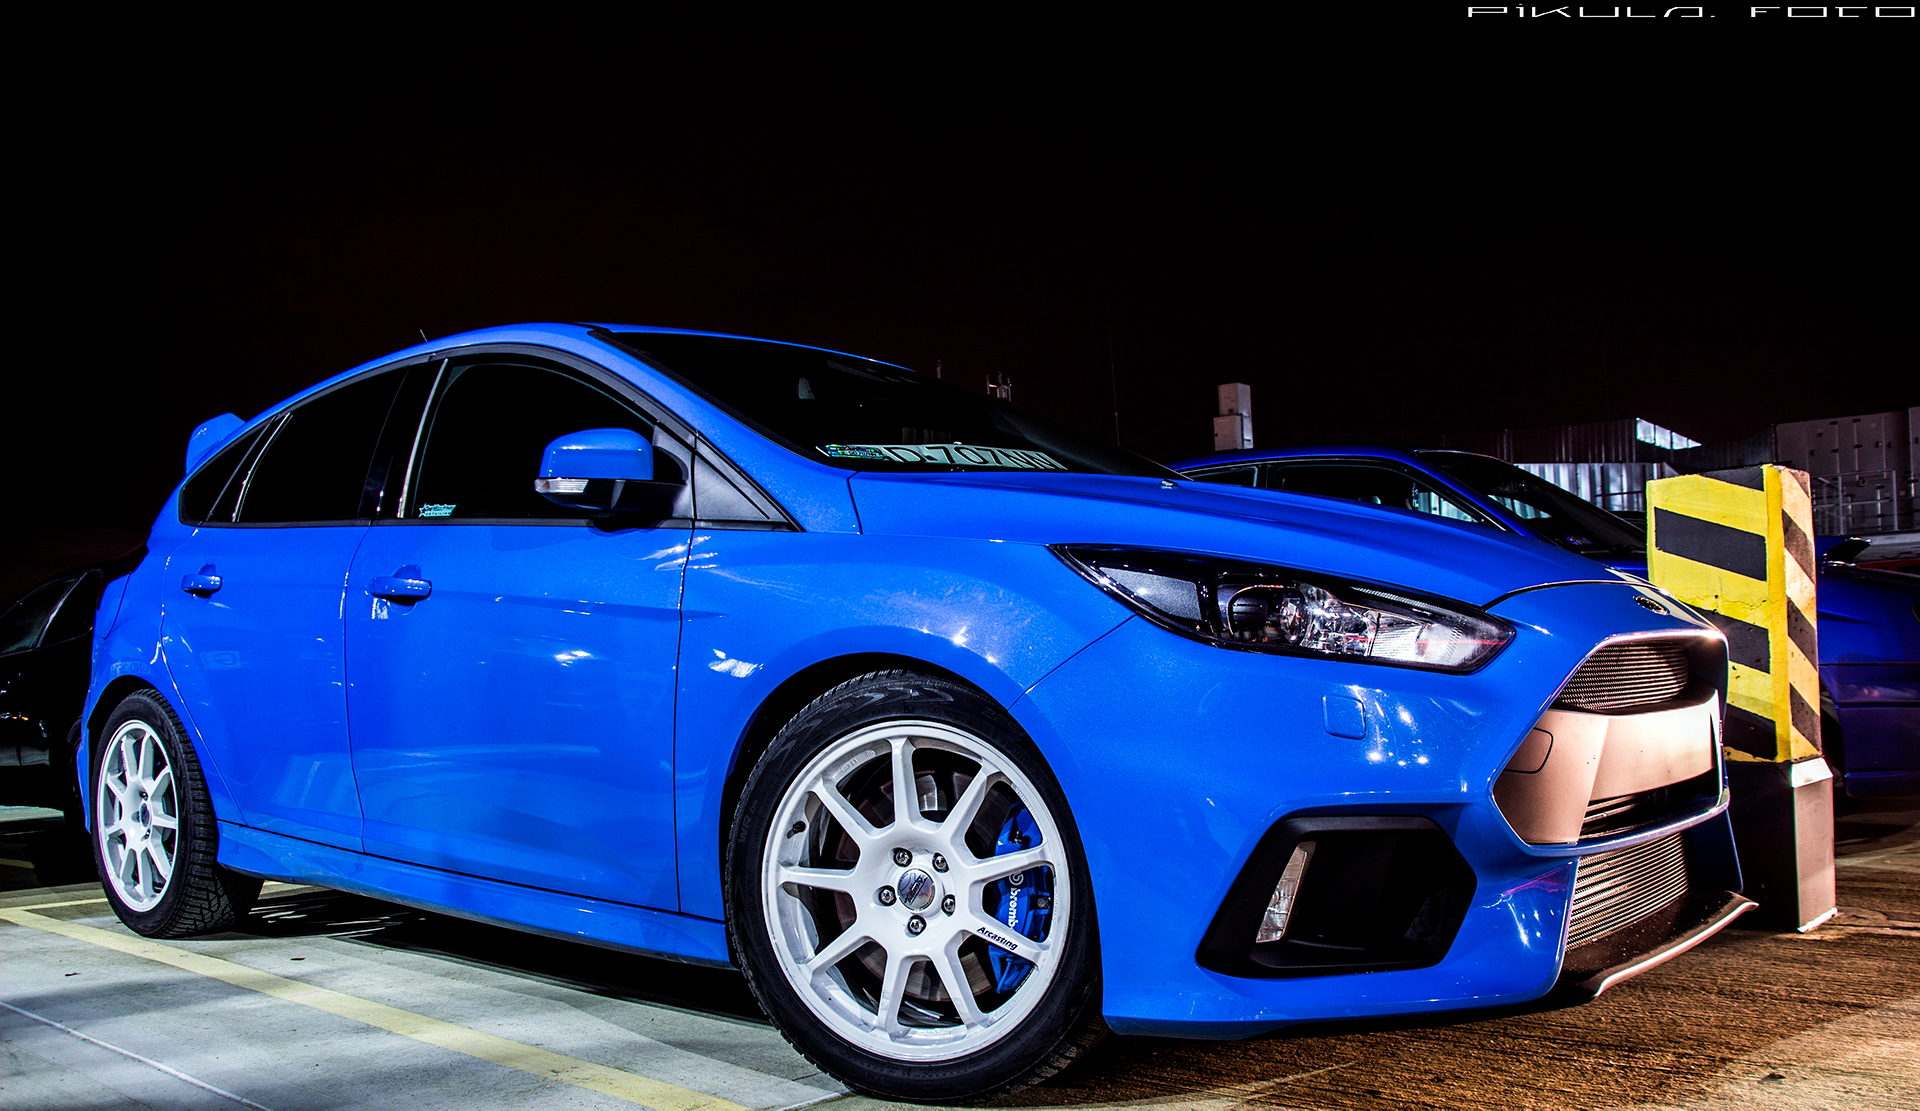 Ford Focus RS 18 wheels